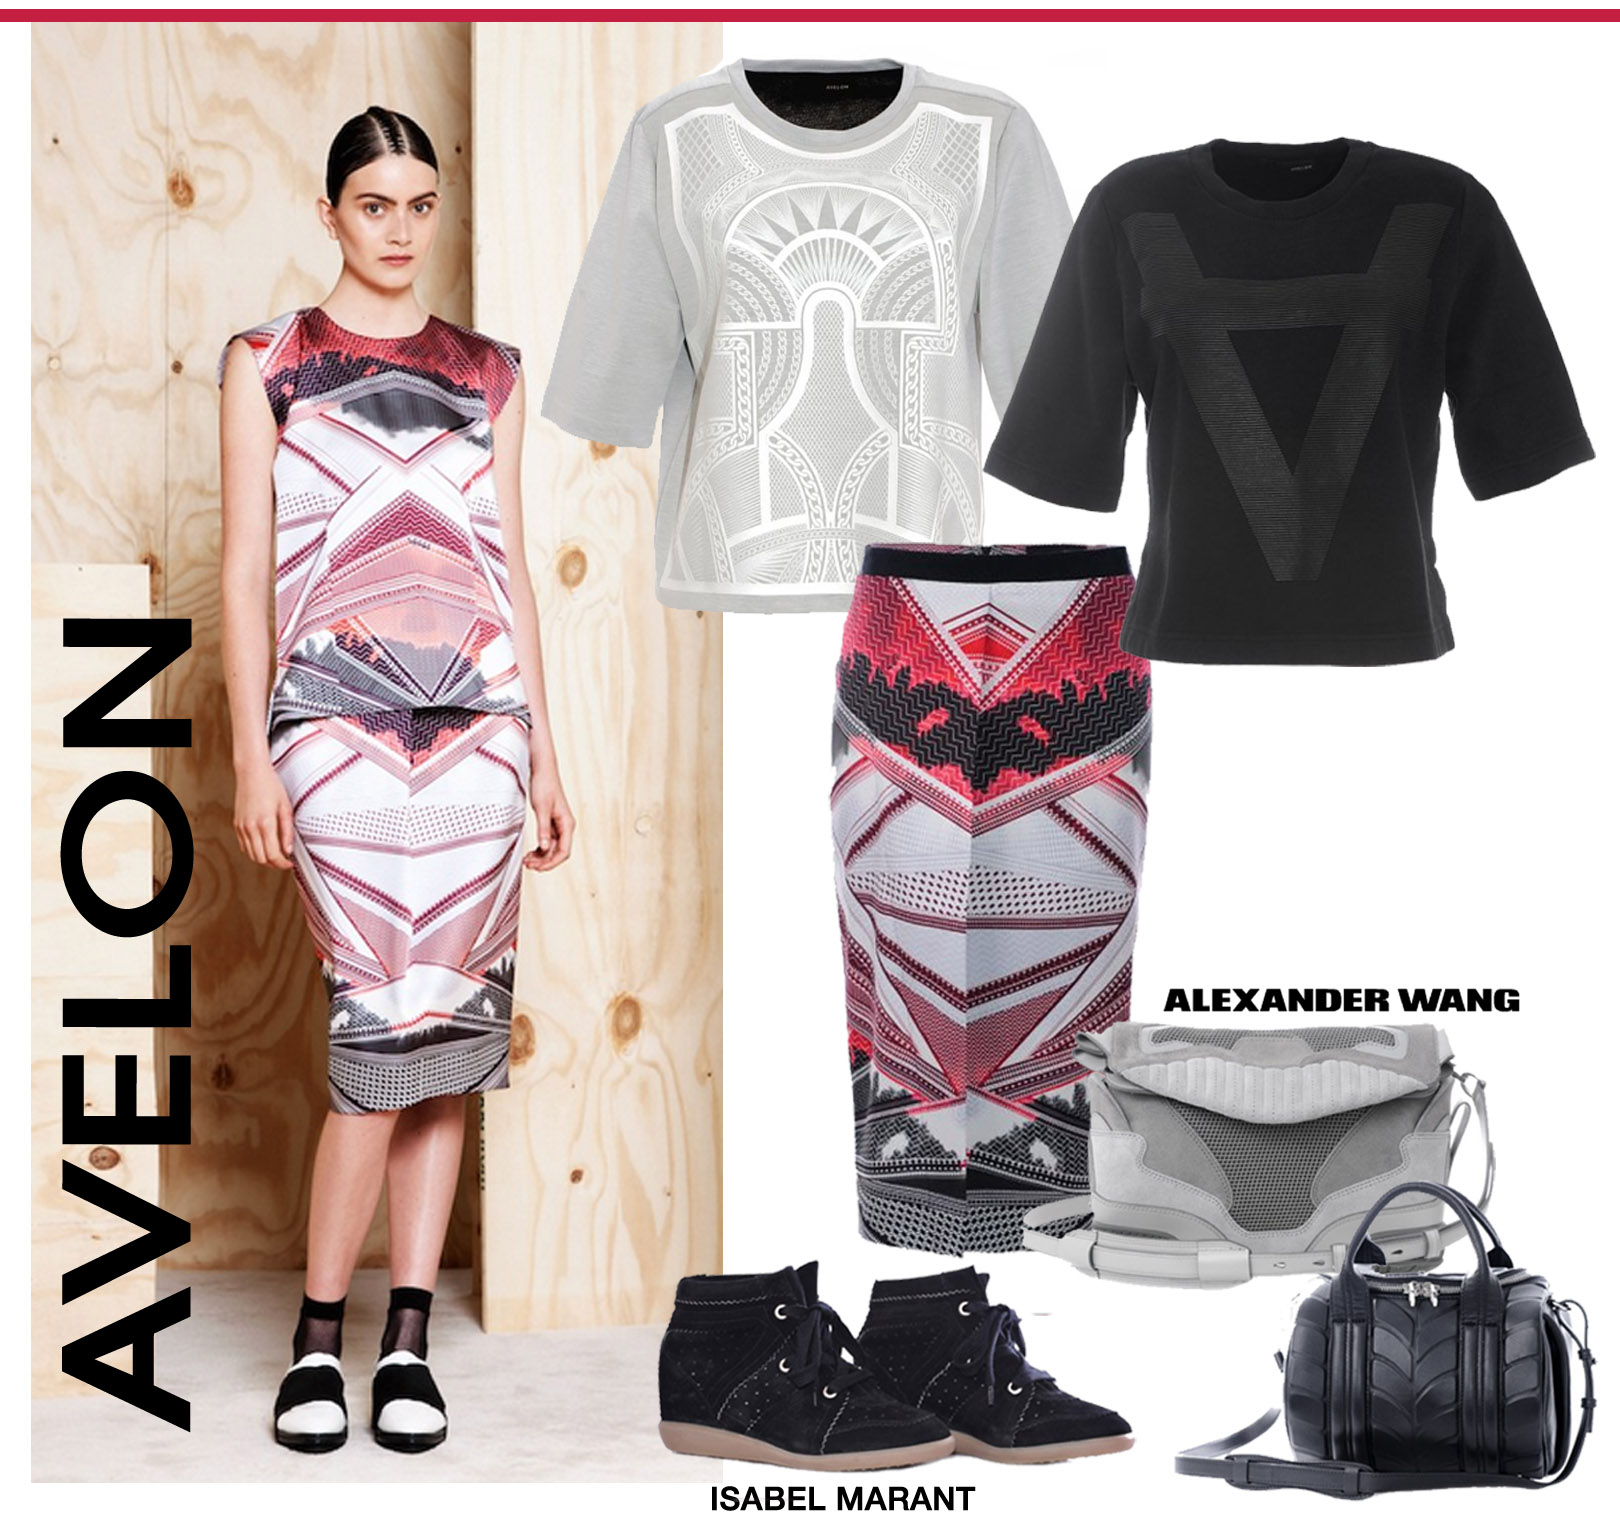 Avelon sports trend copy